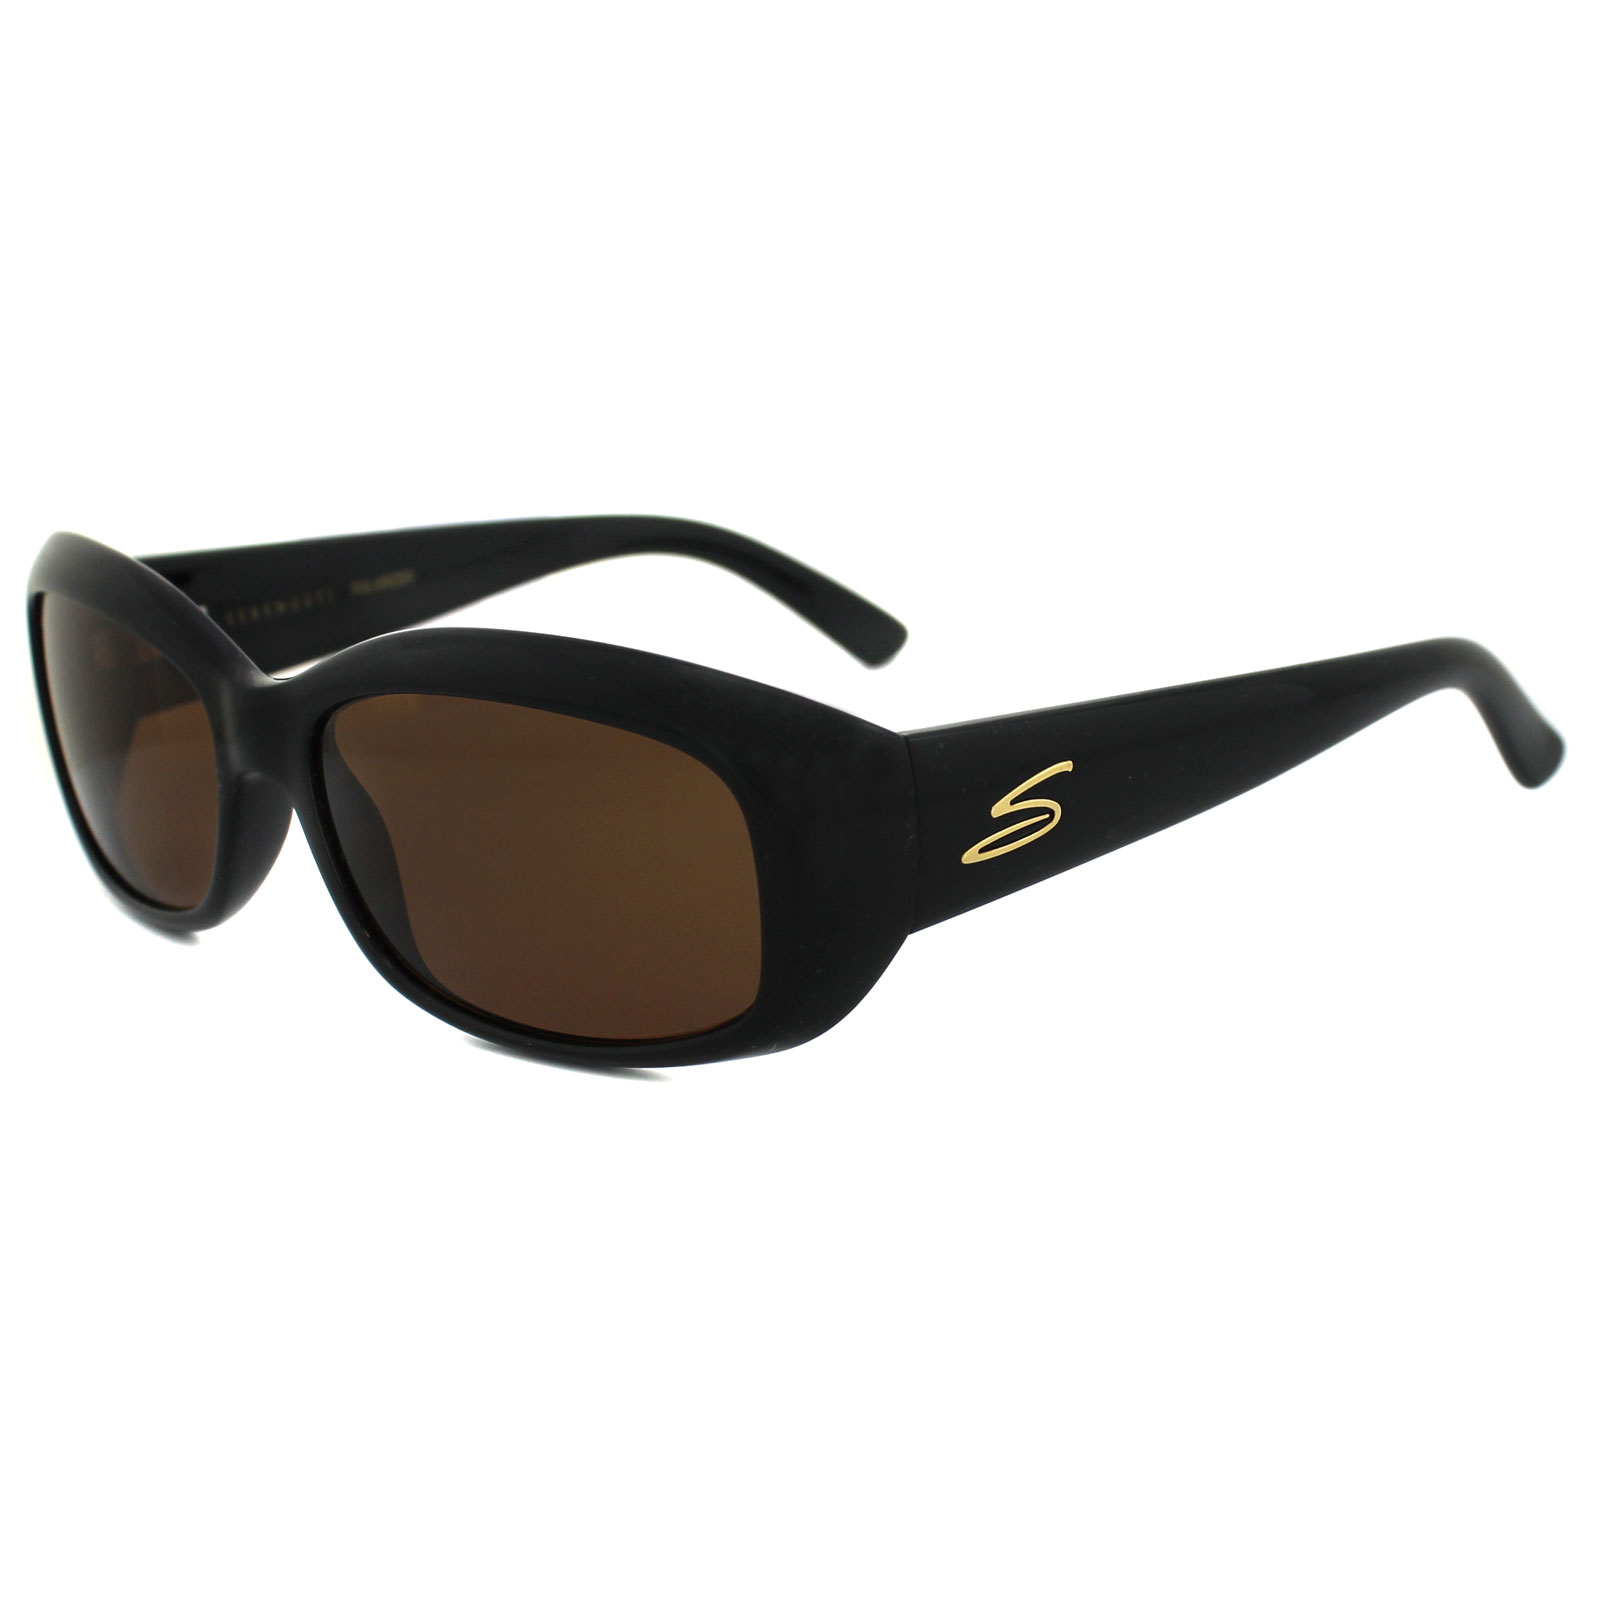 0ecb9eadab Sentinel Serengeti Sunglasses Bianca 7368 Black Drivers Brown Polarized